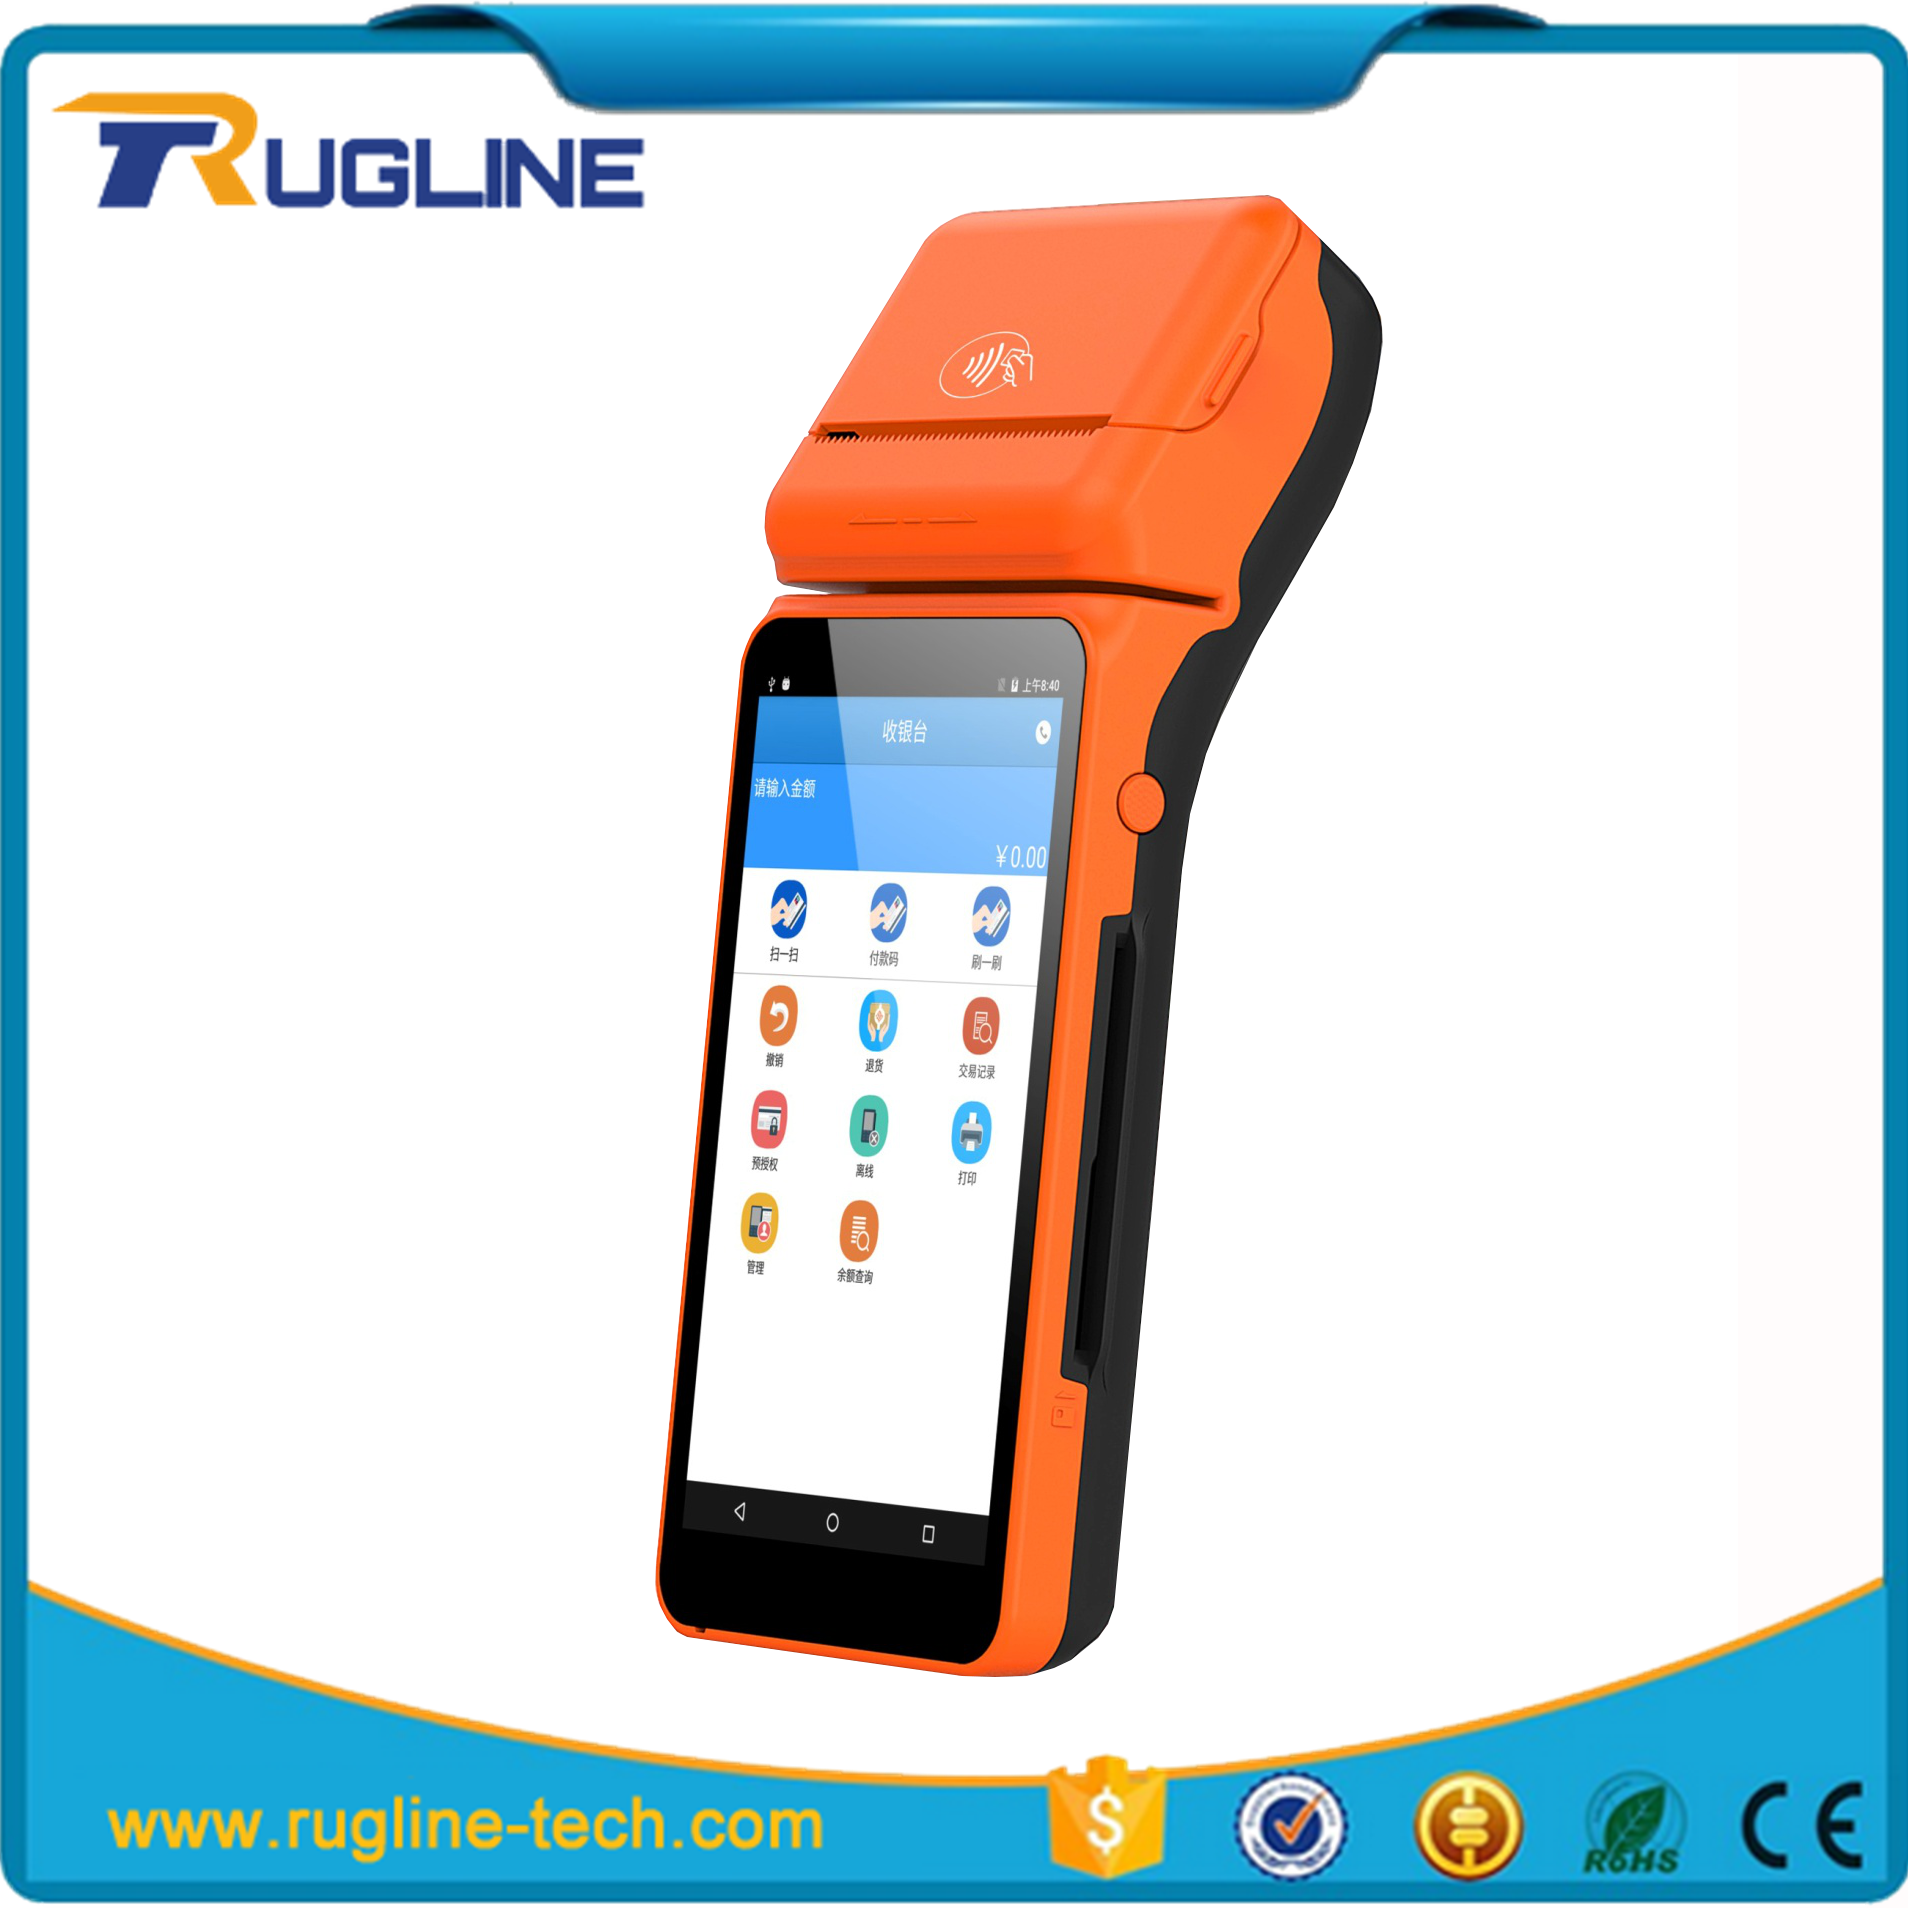 5.5 inch touch handheld loyalty card mobile POS system with 4G and builit-in thermal printer